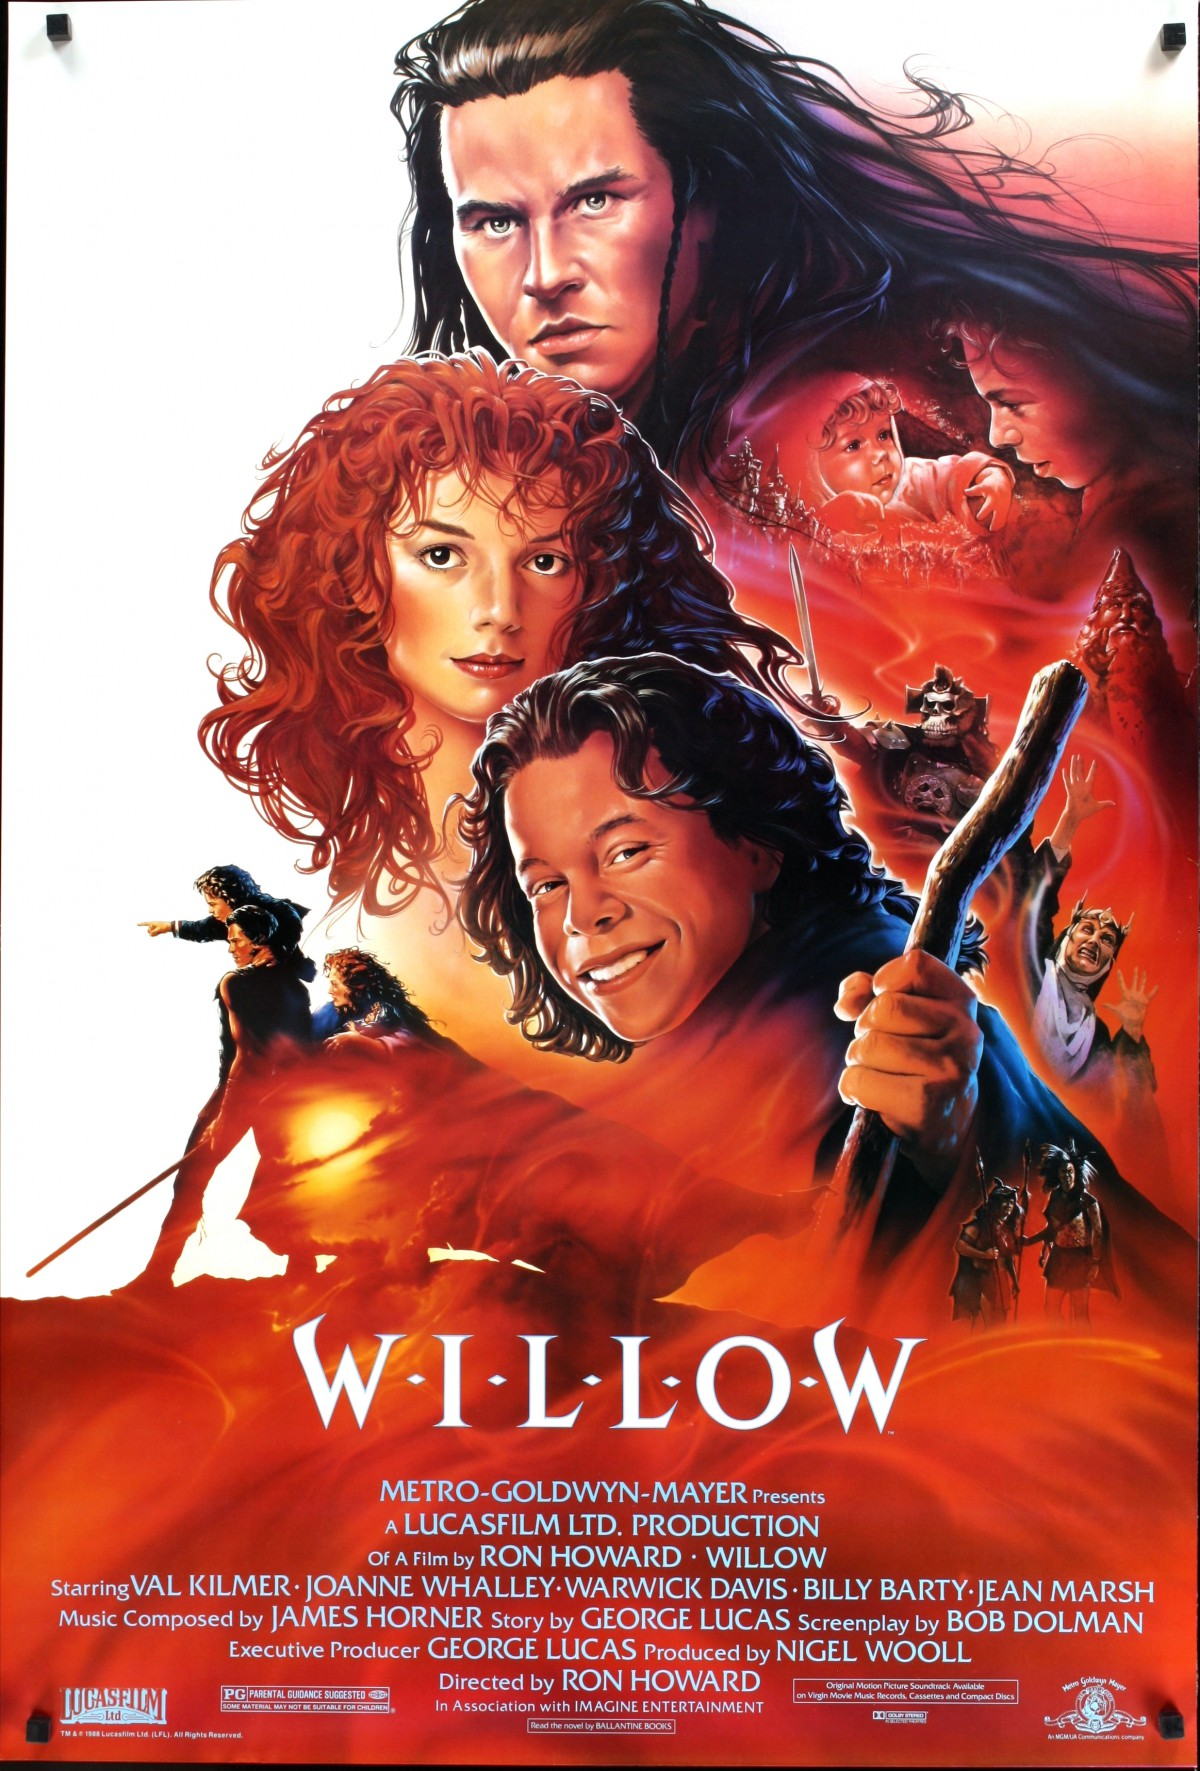 75. Willow (1988)